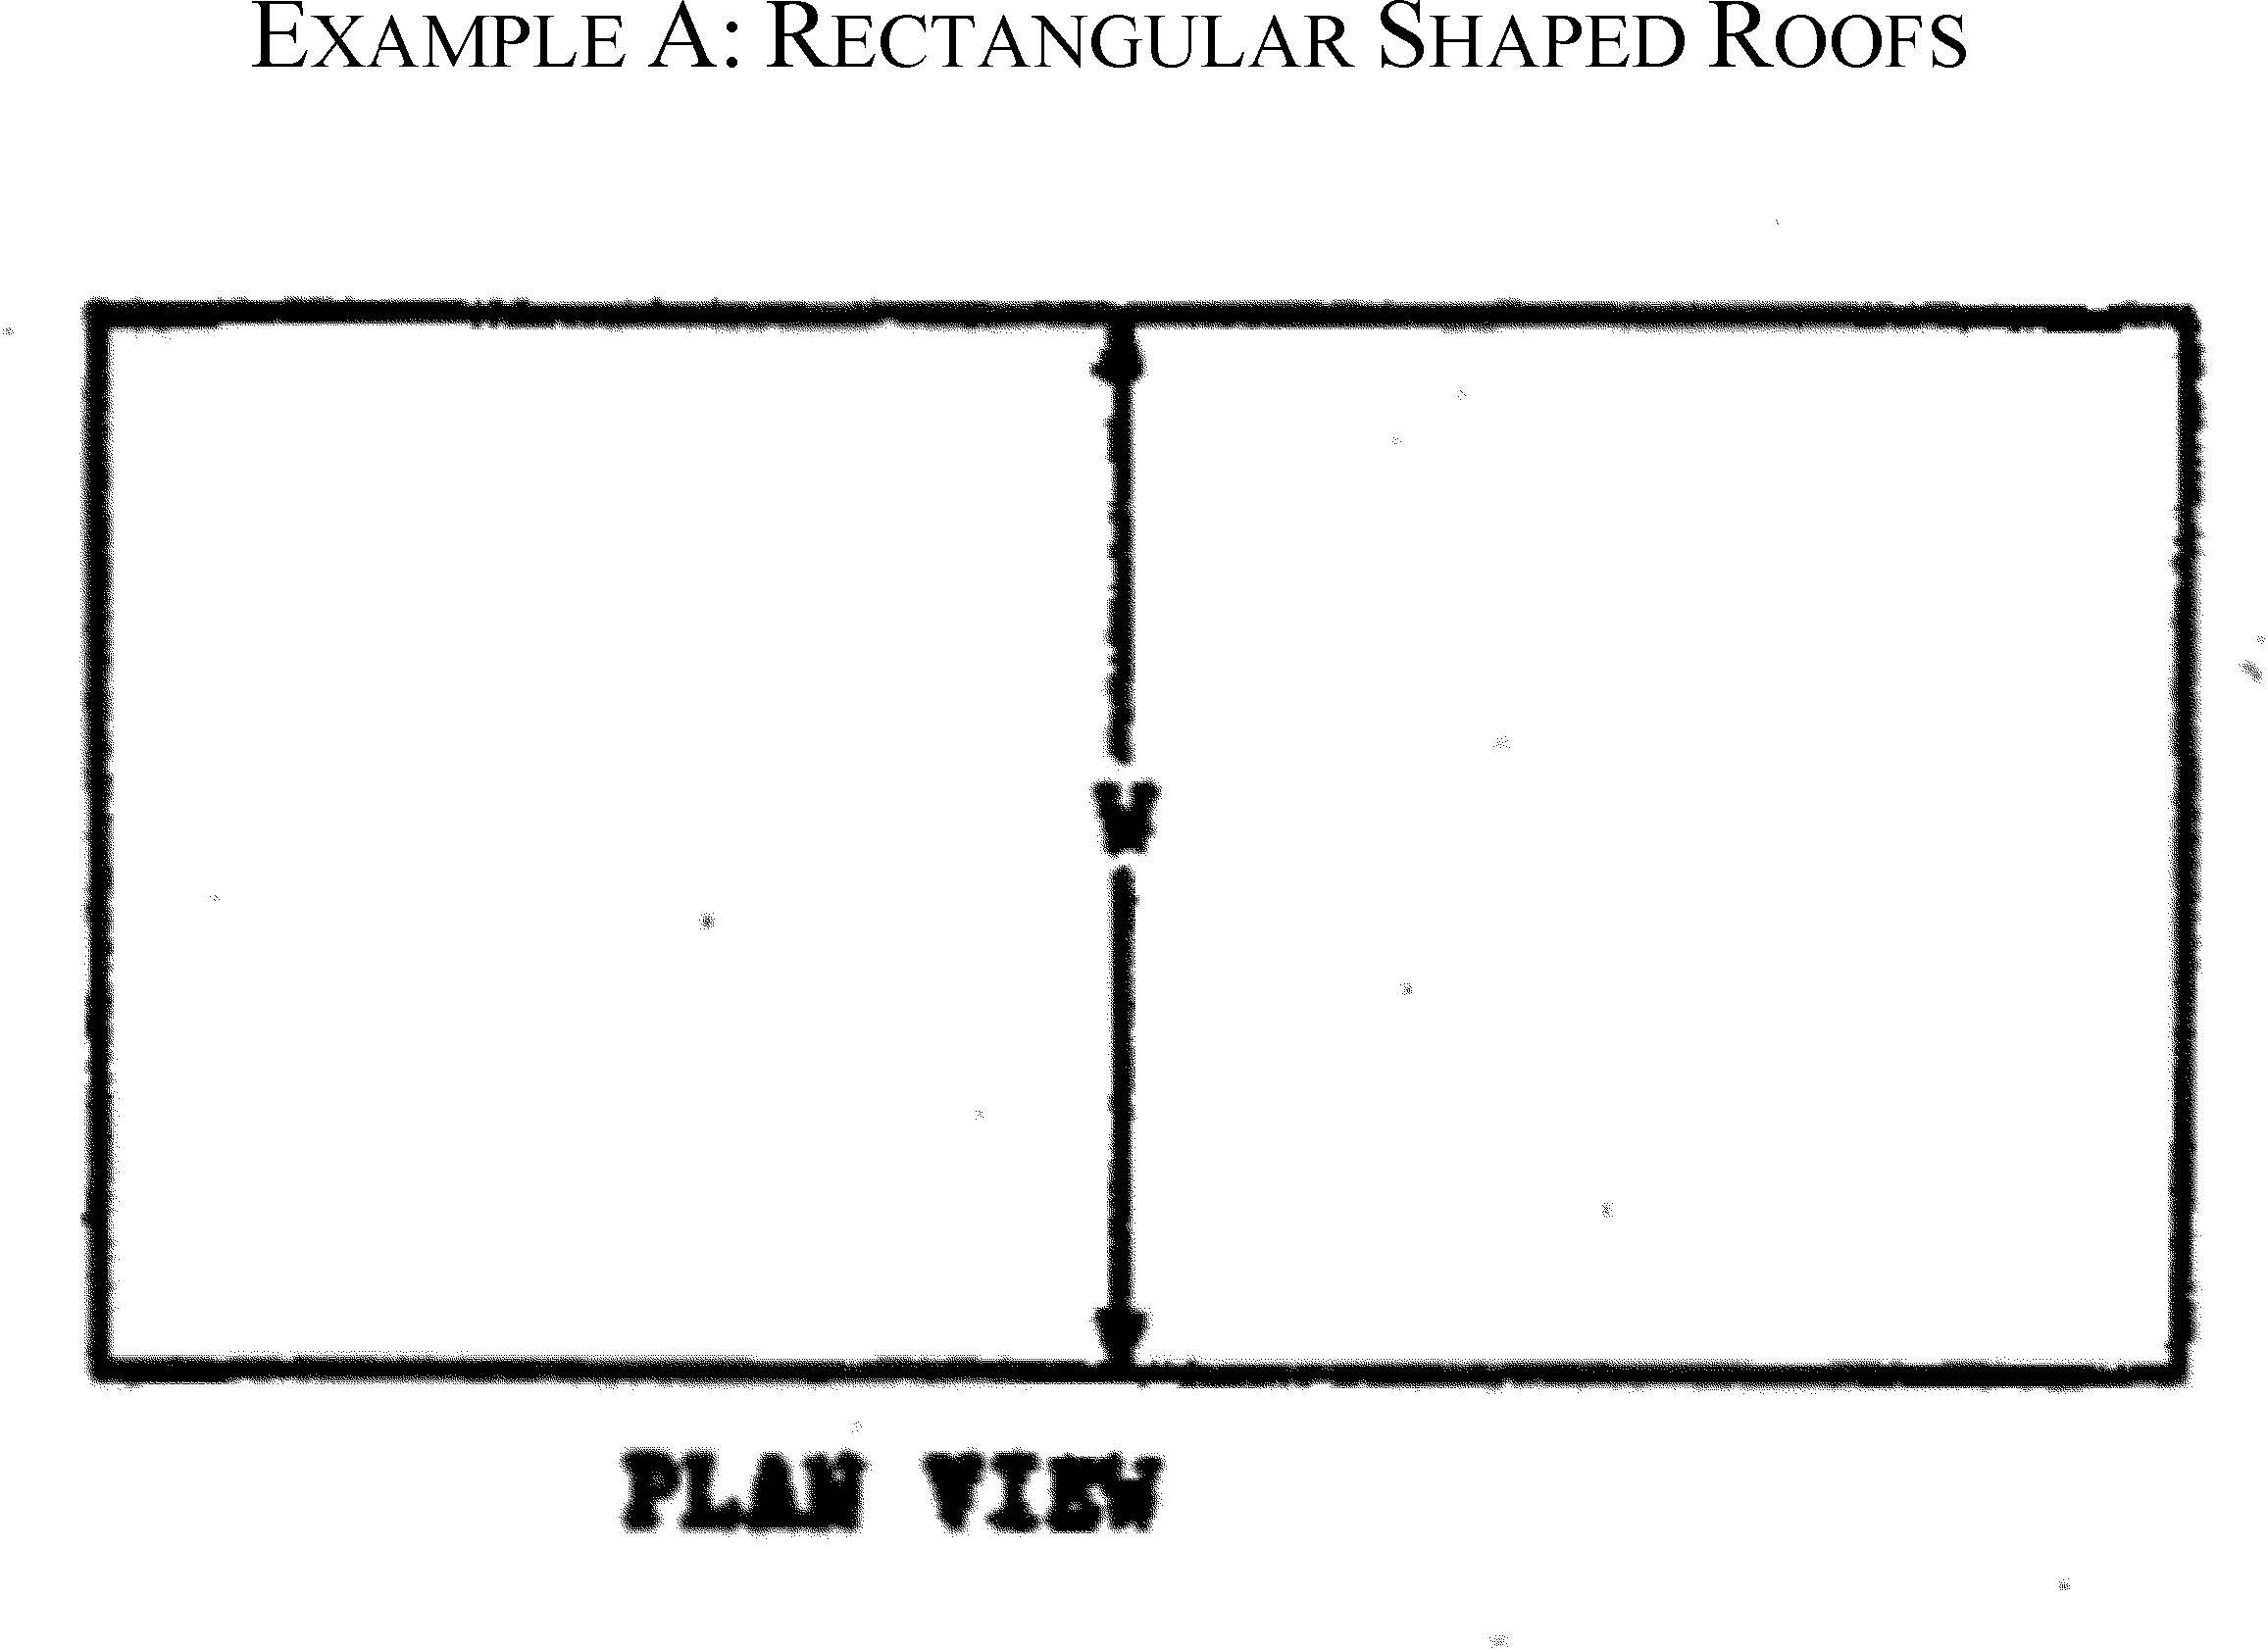 004 Archaicawful Site Specific Safety Plan Template For Roofing Design Full